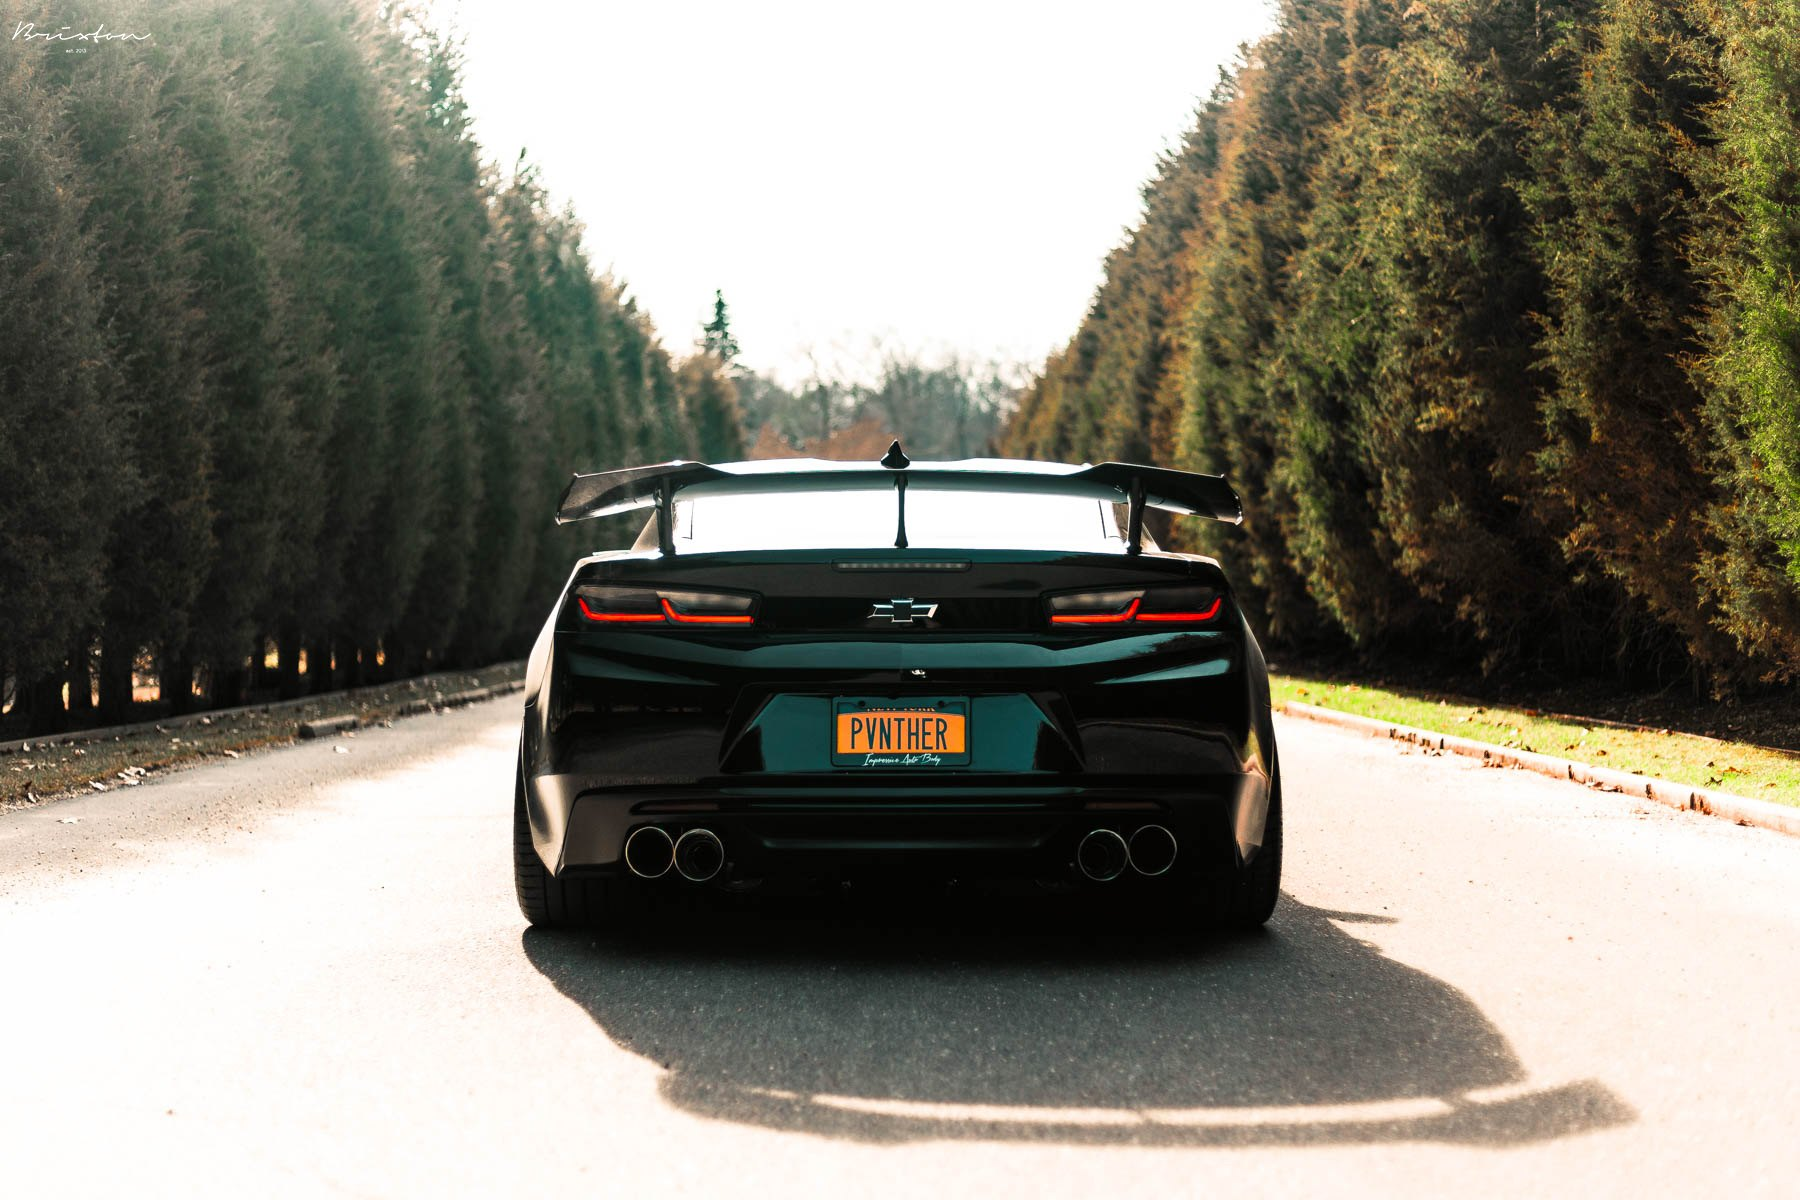 Aftermarket Taillights on Black Chevy Camaro - Photo by Brixton Forged Wheels